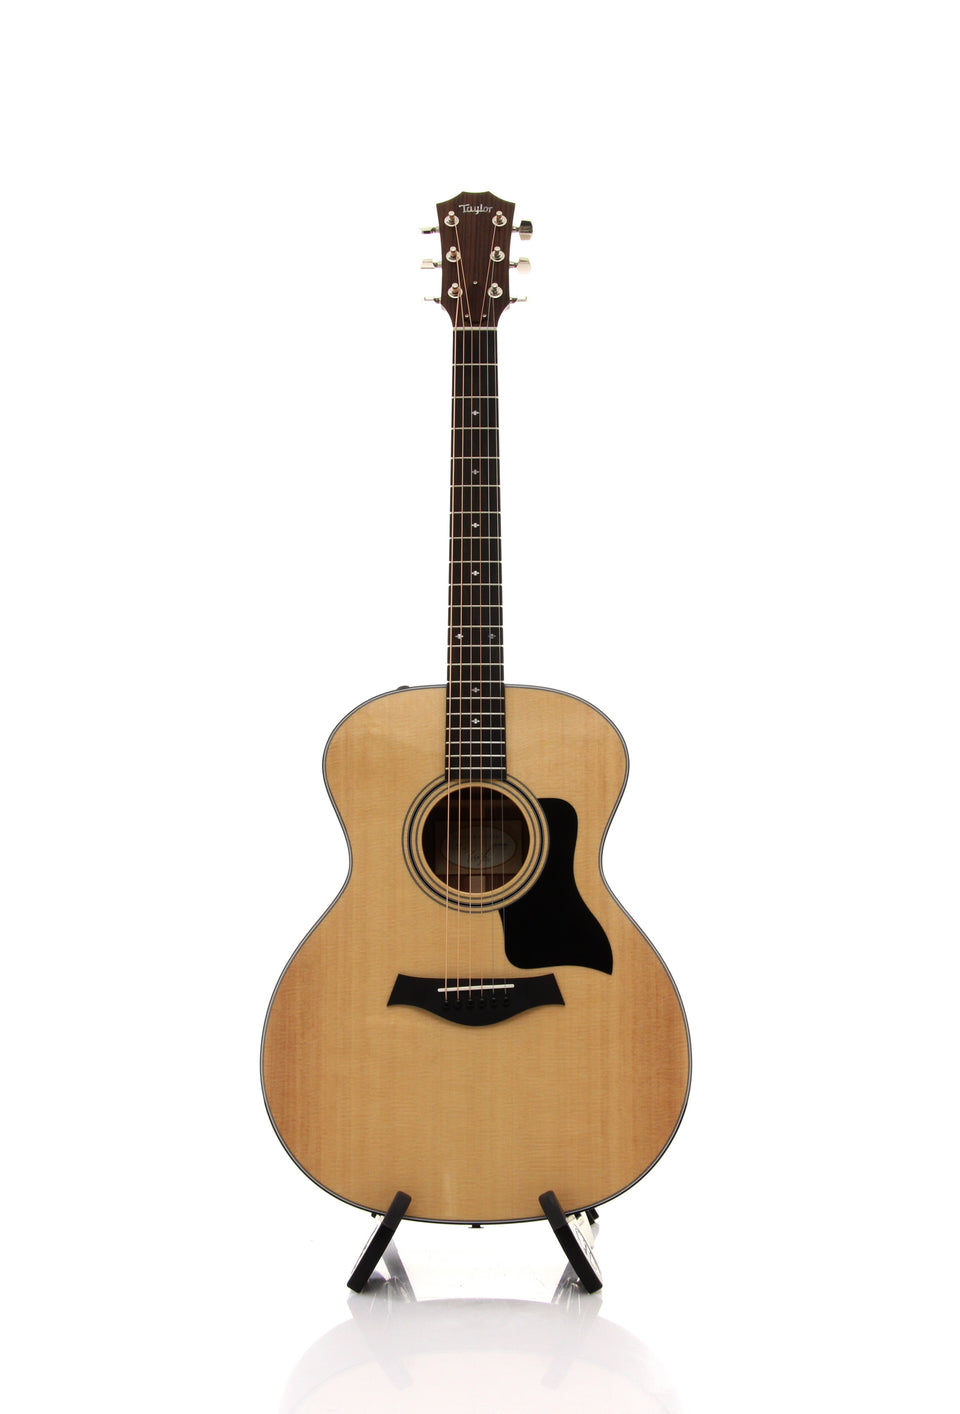 Taylor 314e Grand Auditorium ES2 Acoustic/Electric Guitar - Natural